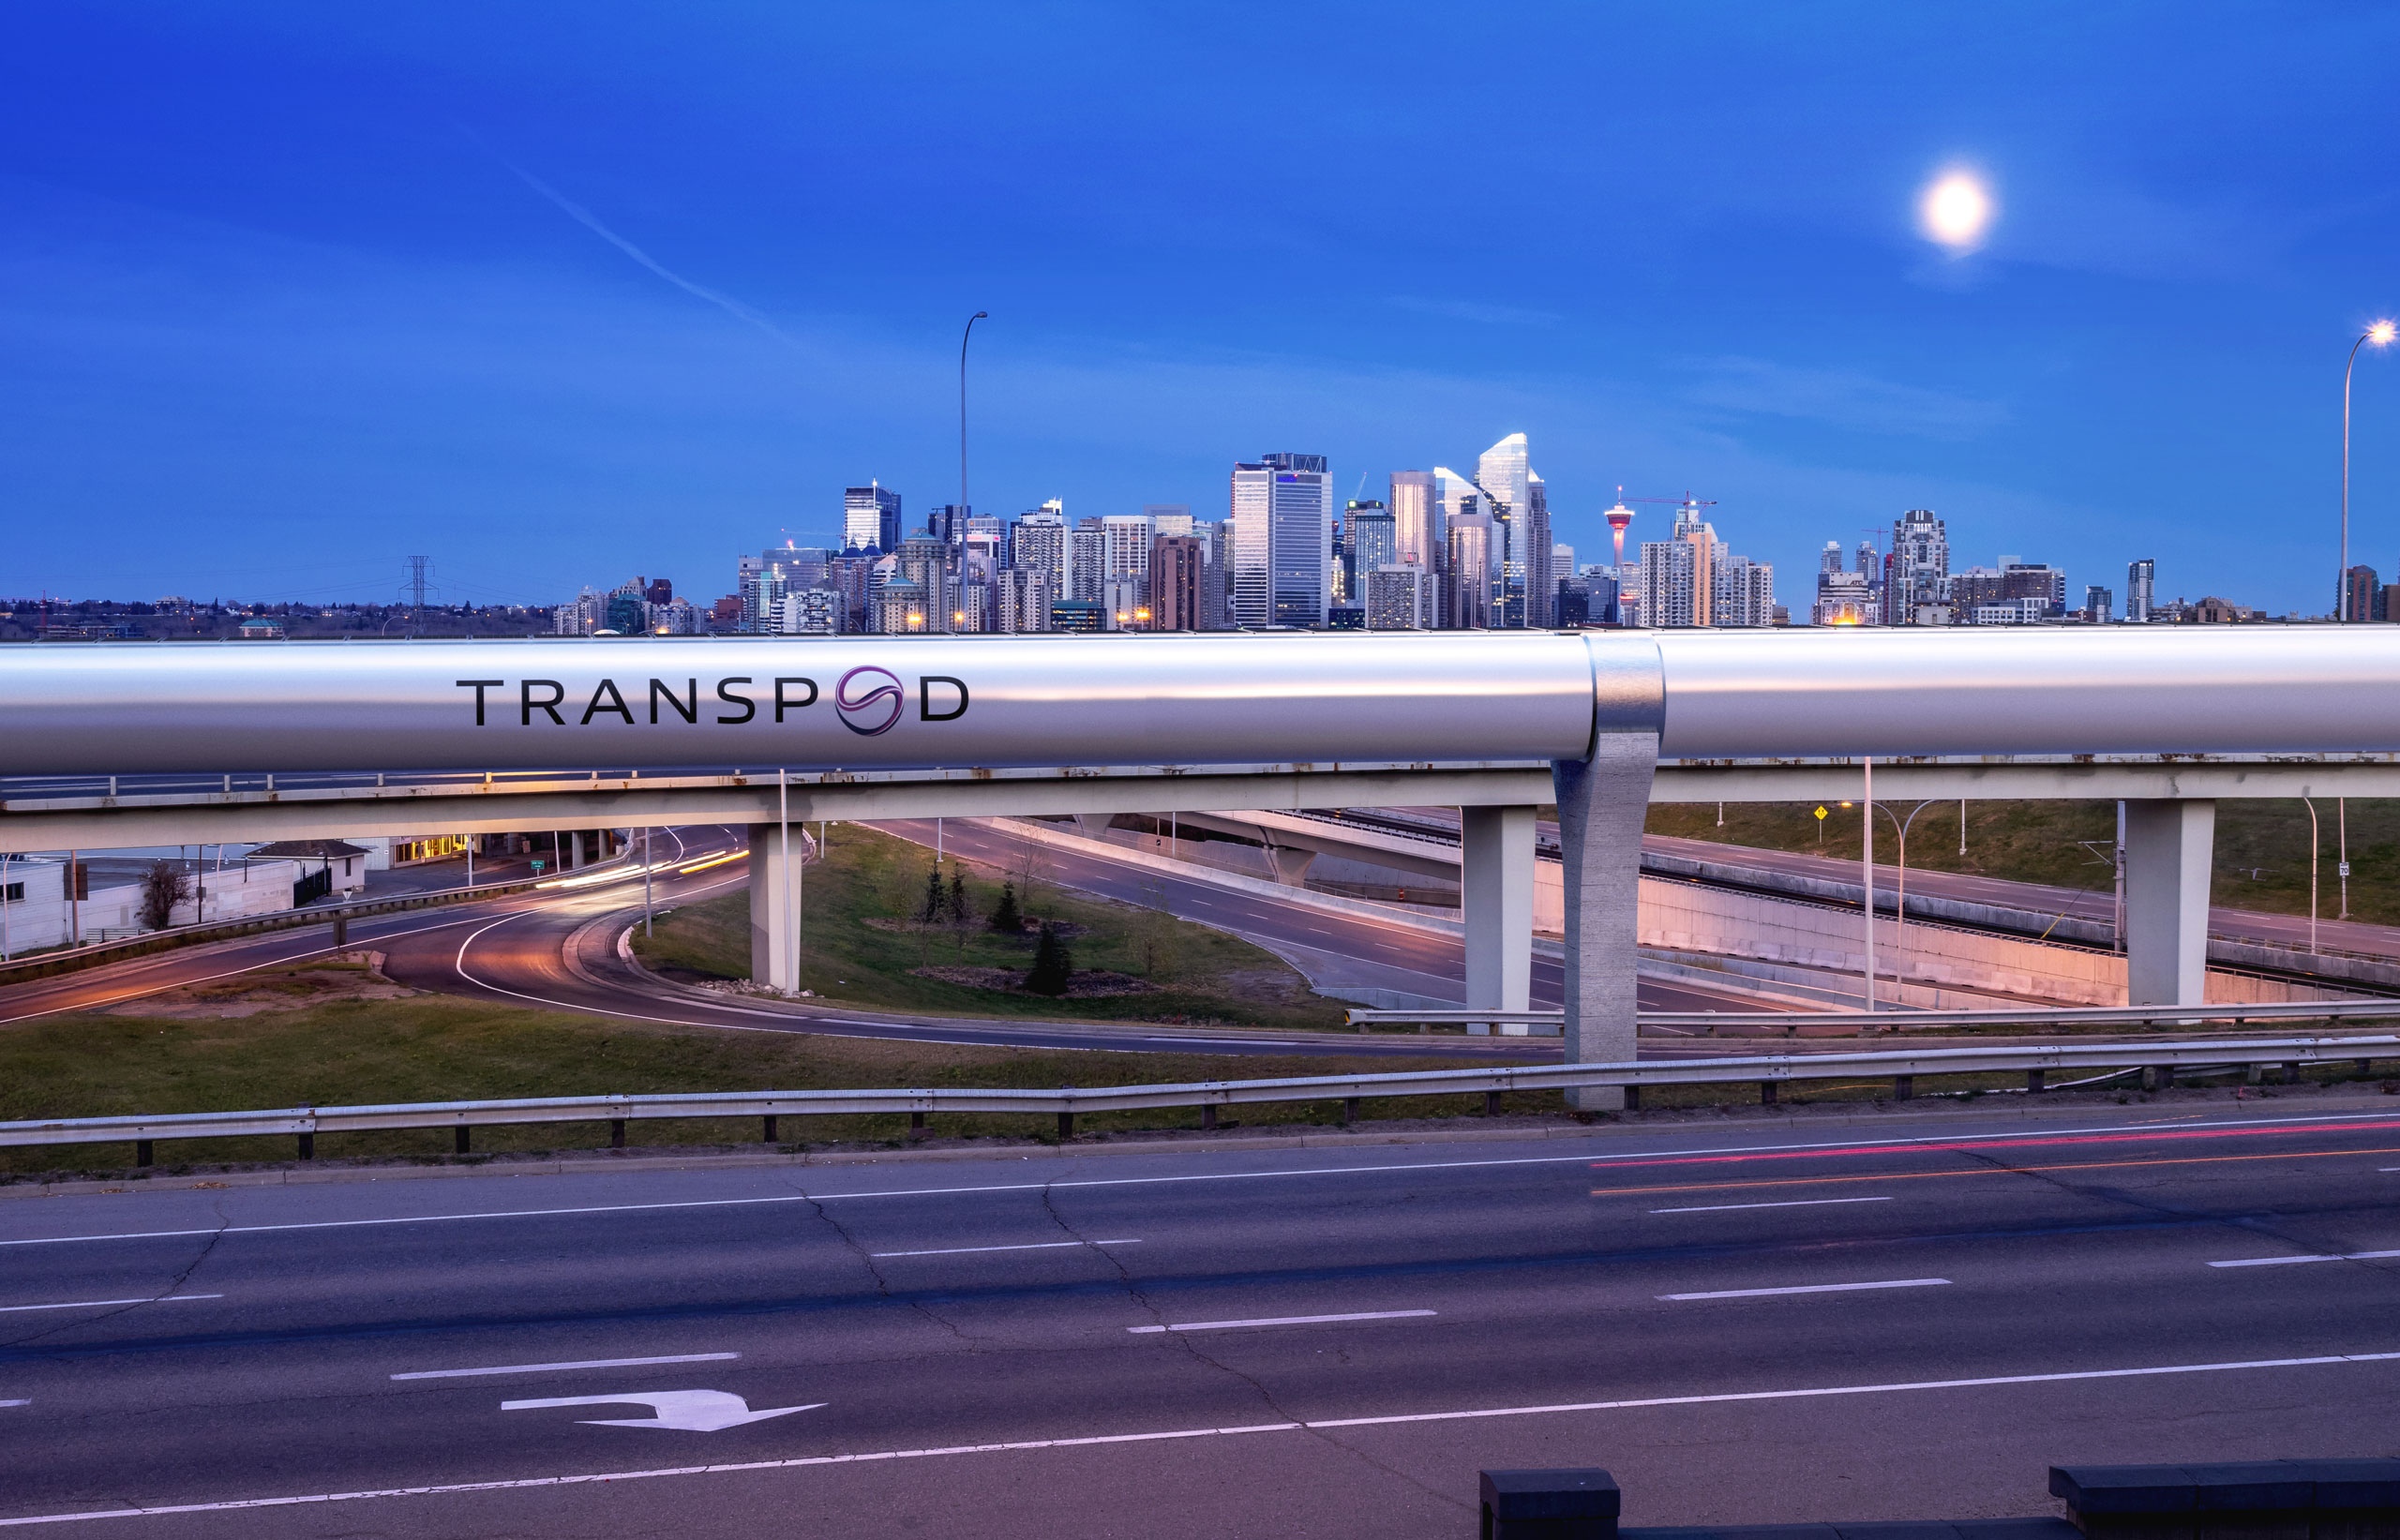 TransPod's Hyperloop idea losing traction in Canada